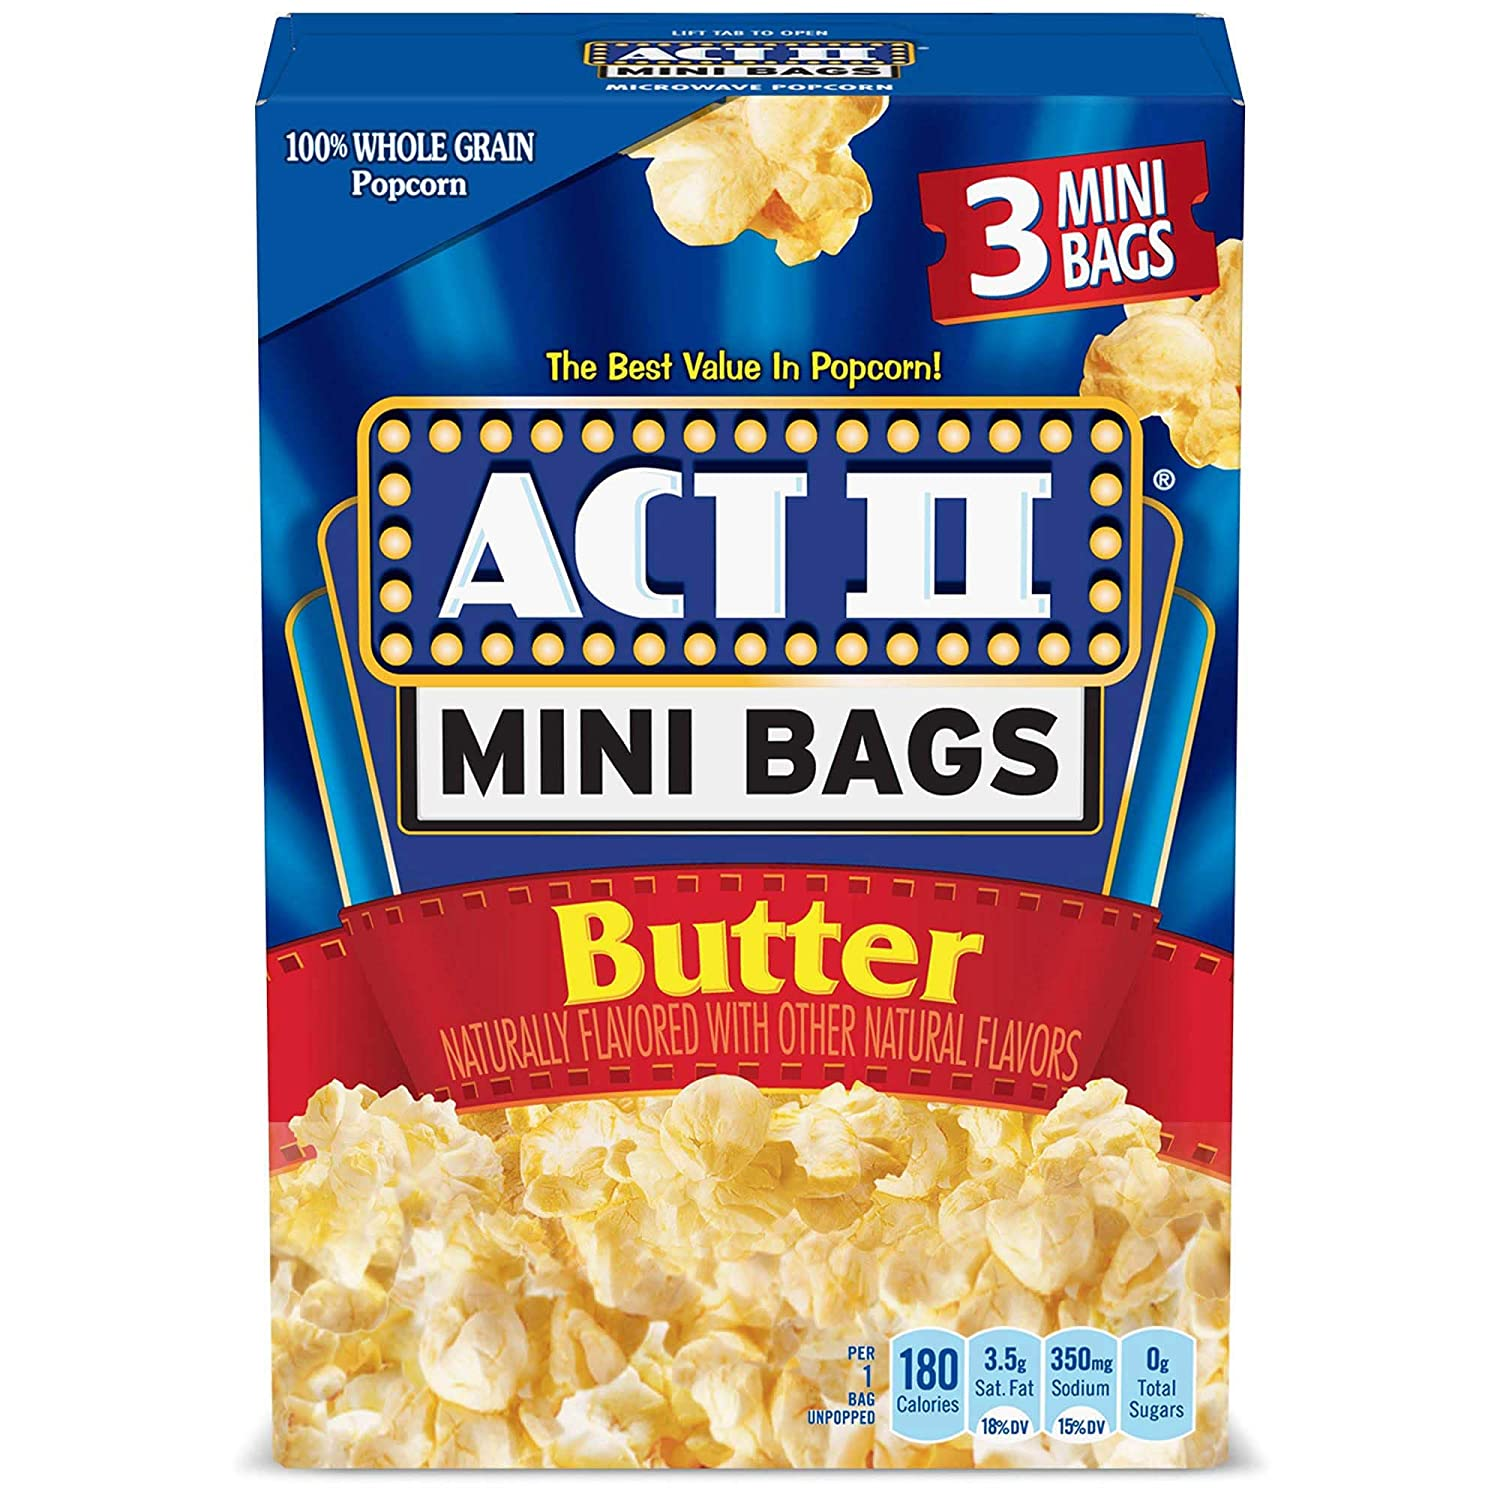 ACT II Butter Microwave Popcorn, 3-Count, 1.6-oz. Mini Bags (Pack of 12)